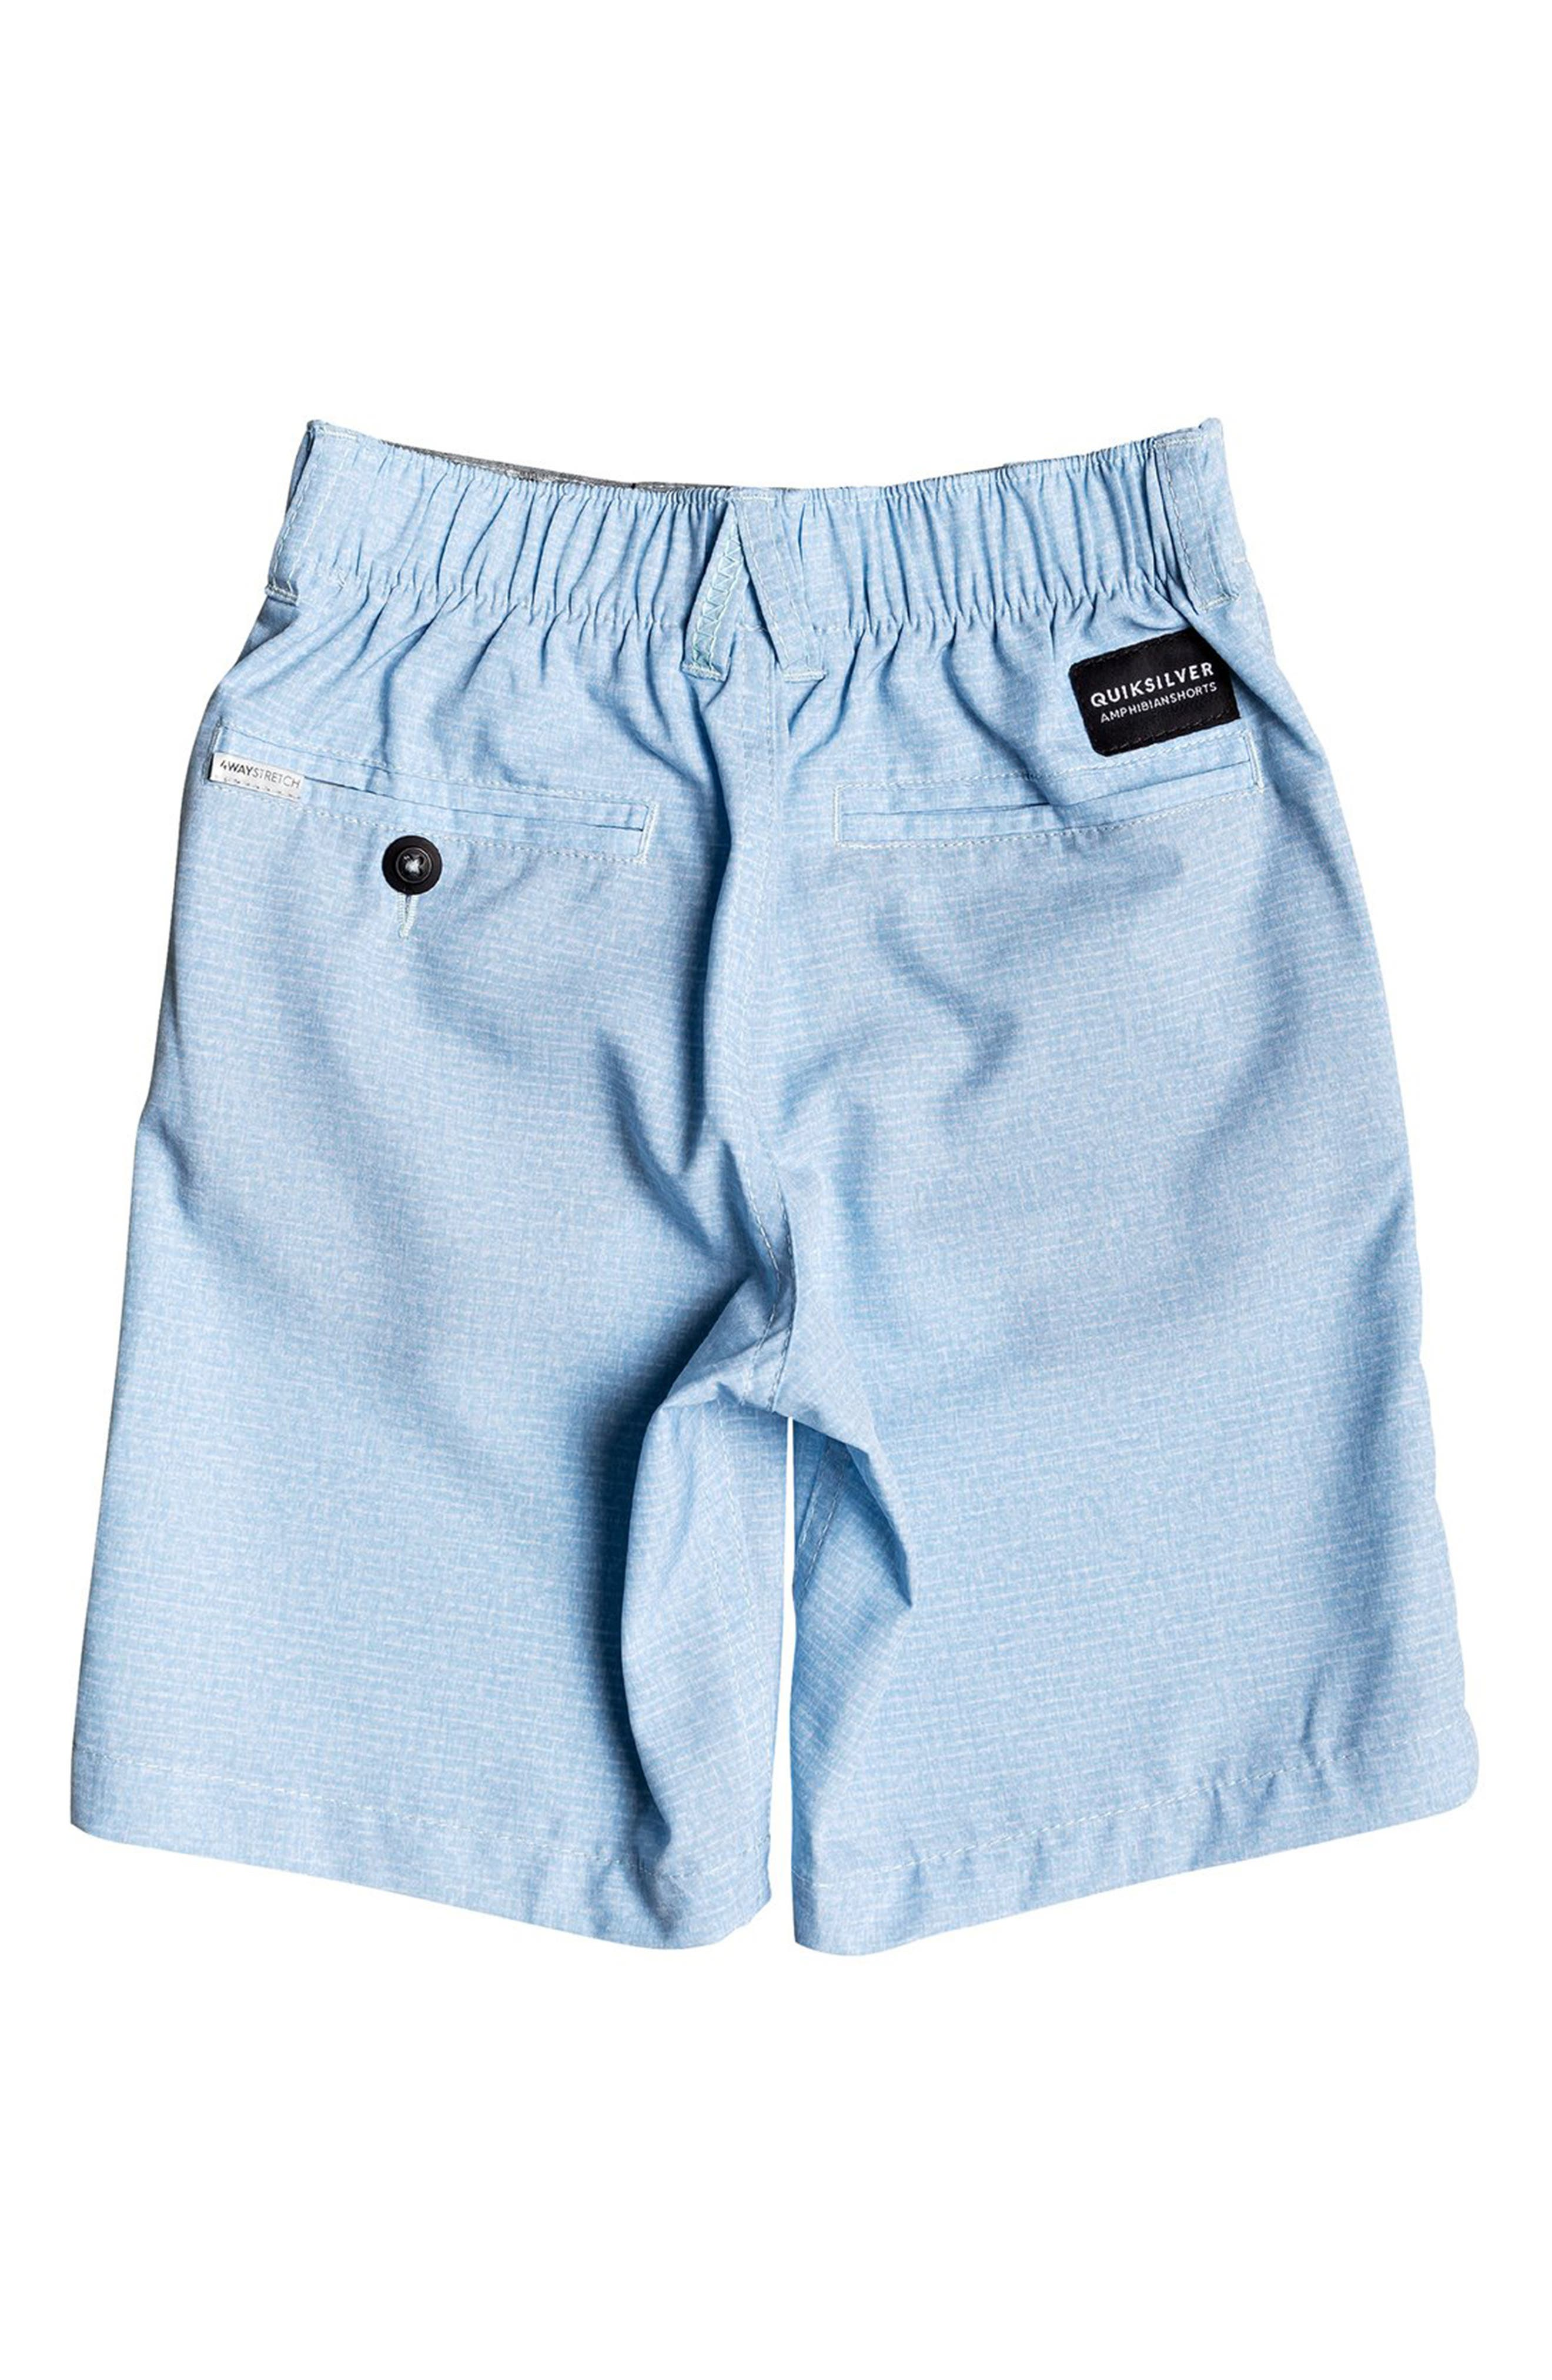 6af191507e Boys' Quiksilver Shorts (2T-7): Cargo, Plaid & Chino | Nordstrom